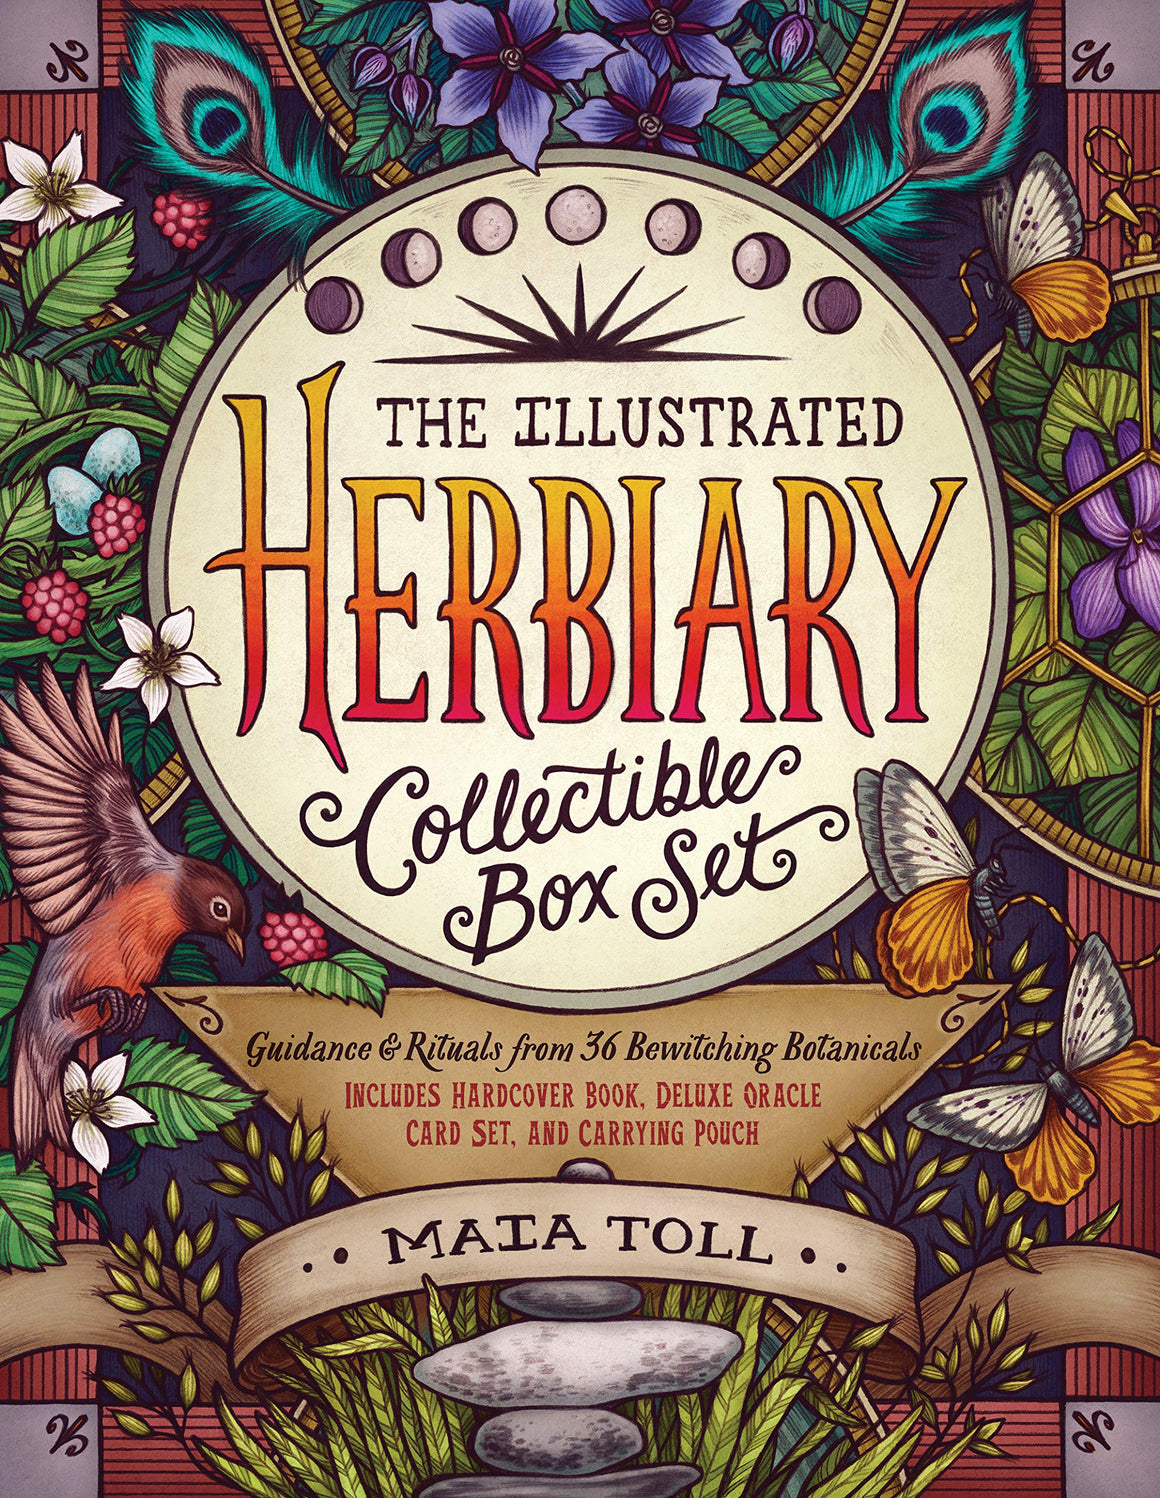 Illustrated Herbiary Collectible Box Set